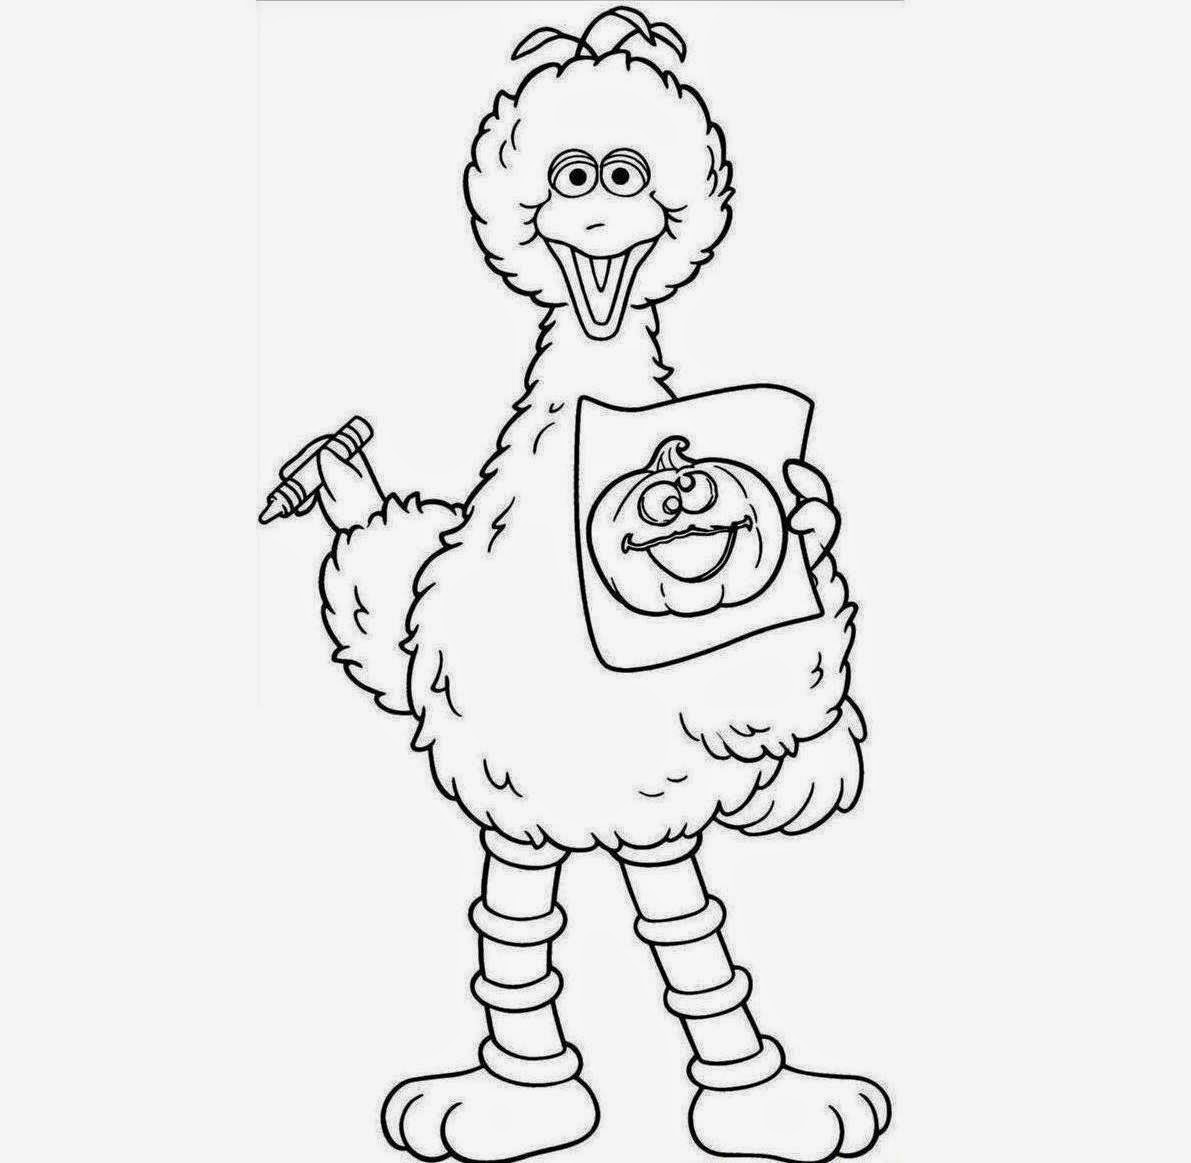 Big Bird For Kid Coloring Drawing Free Wallpaperd